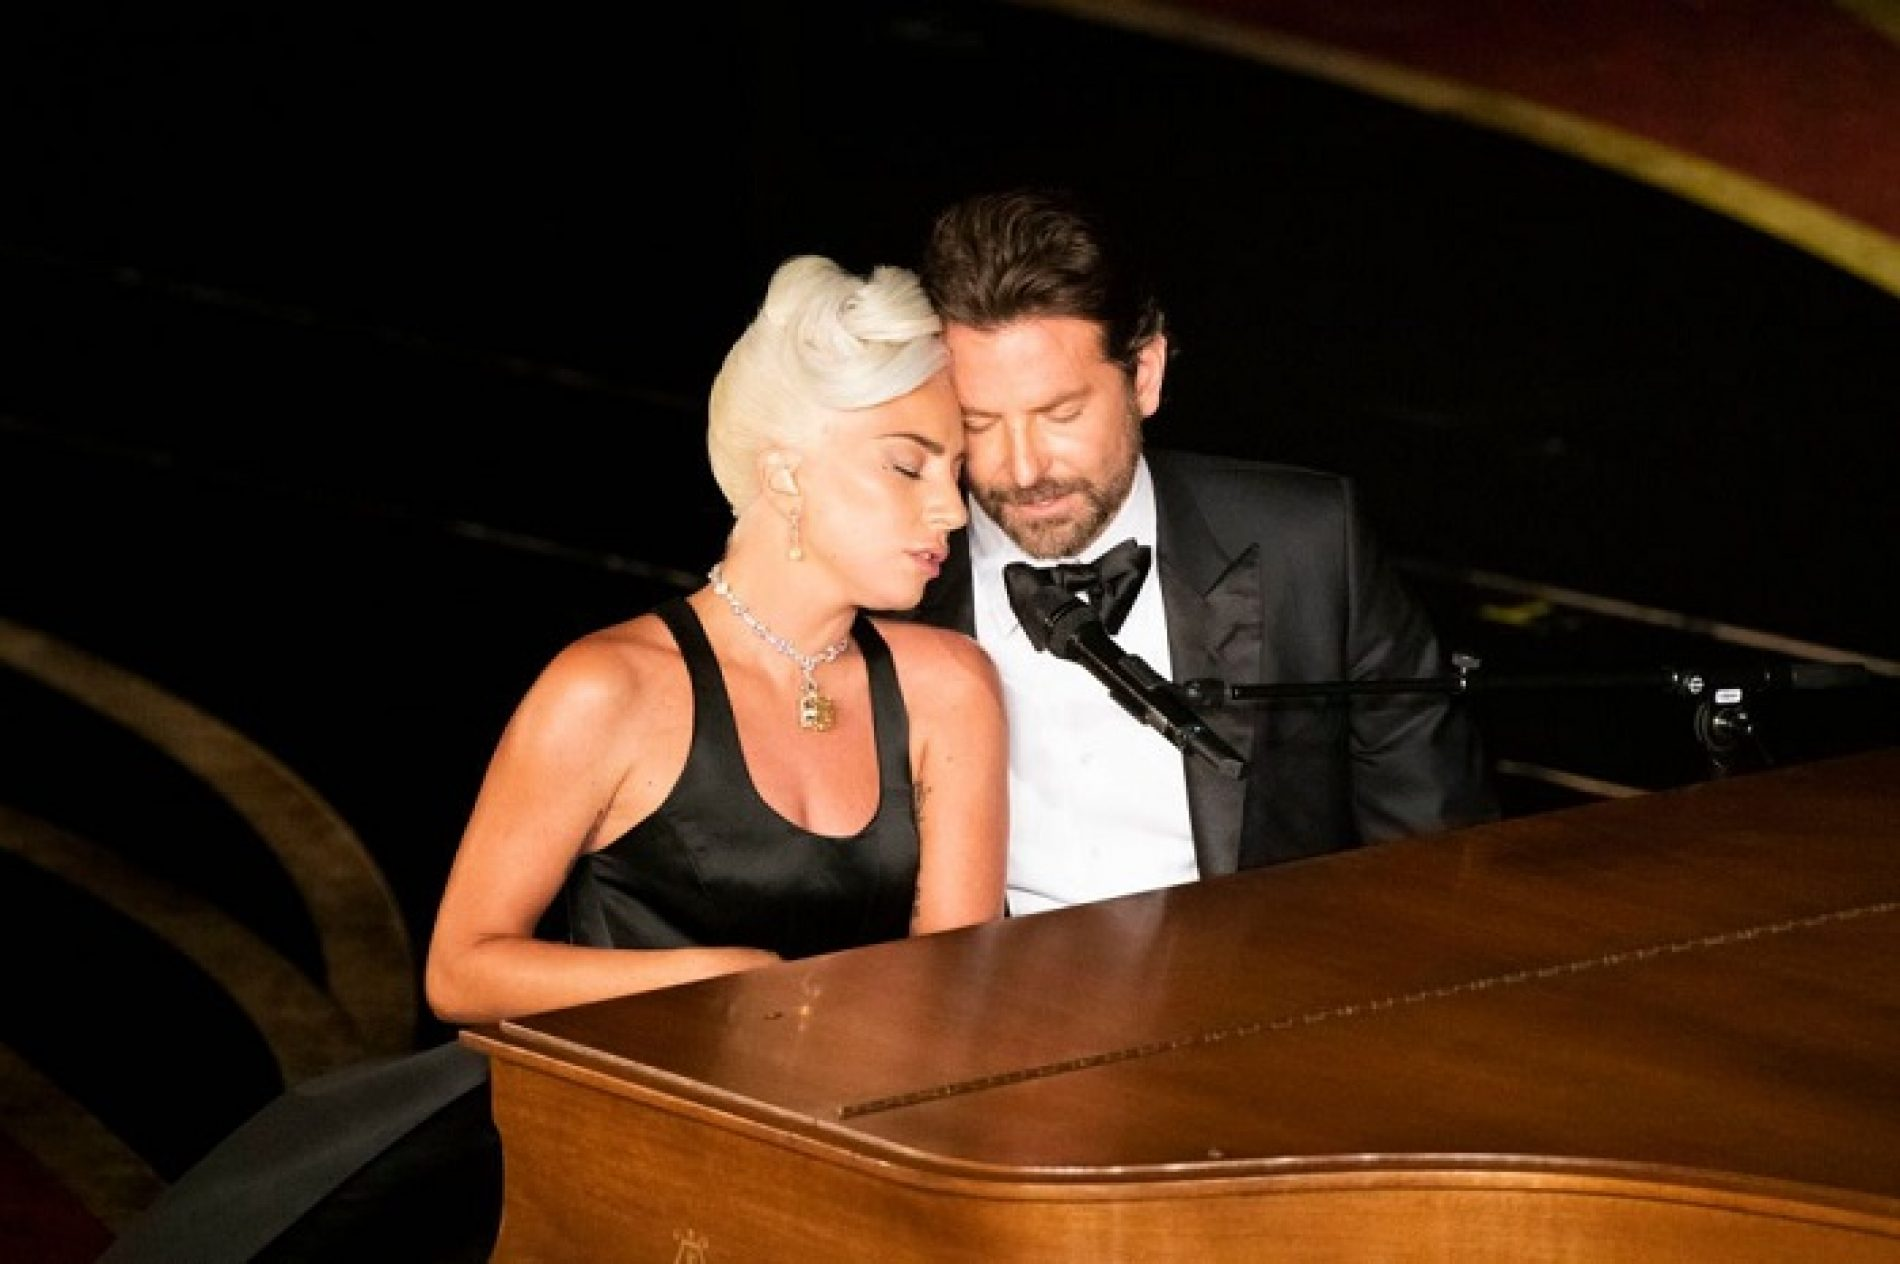 Lady Gaga sets the record straight on those Bradley Cooper rumors